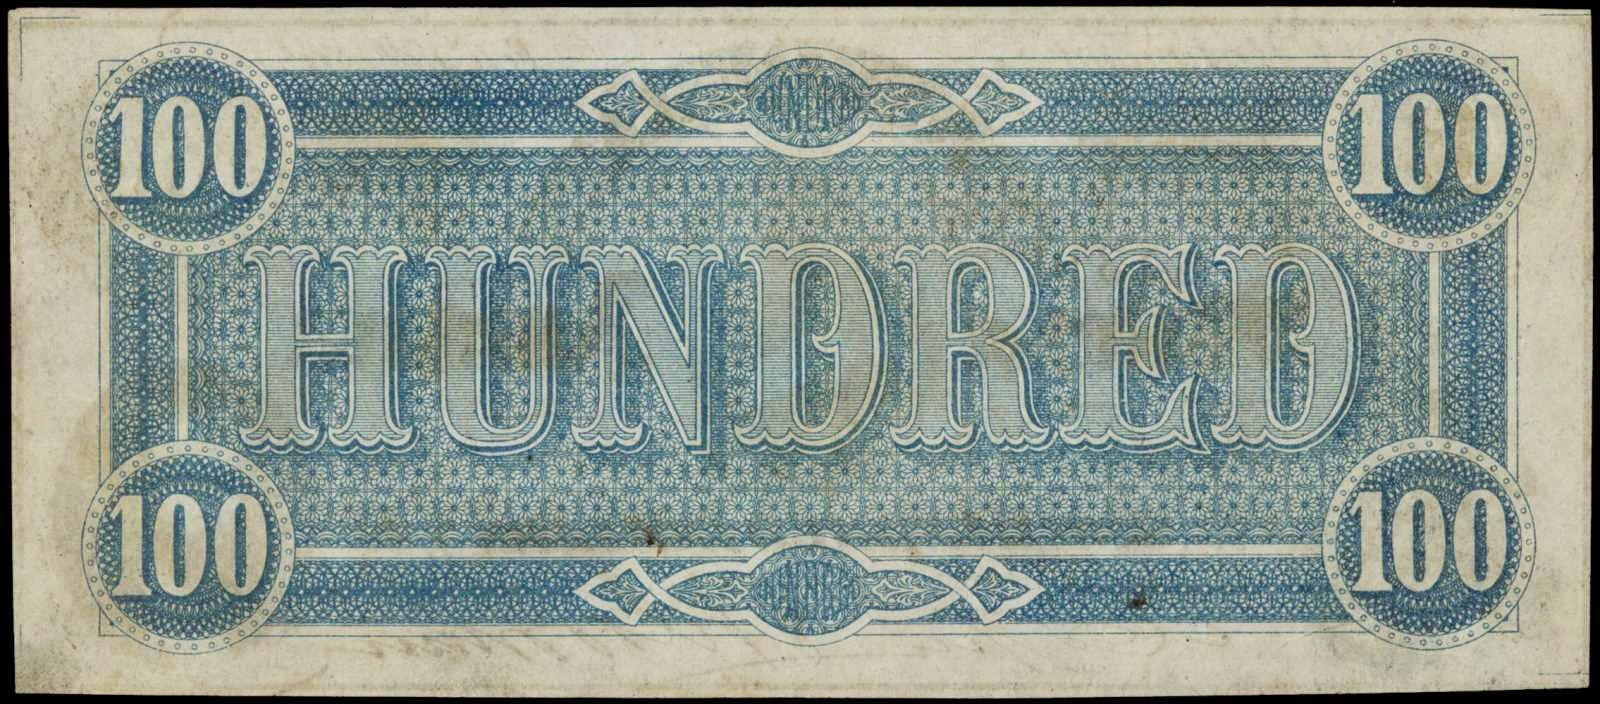 Confederate Money Currency One Hundred Dollars